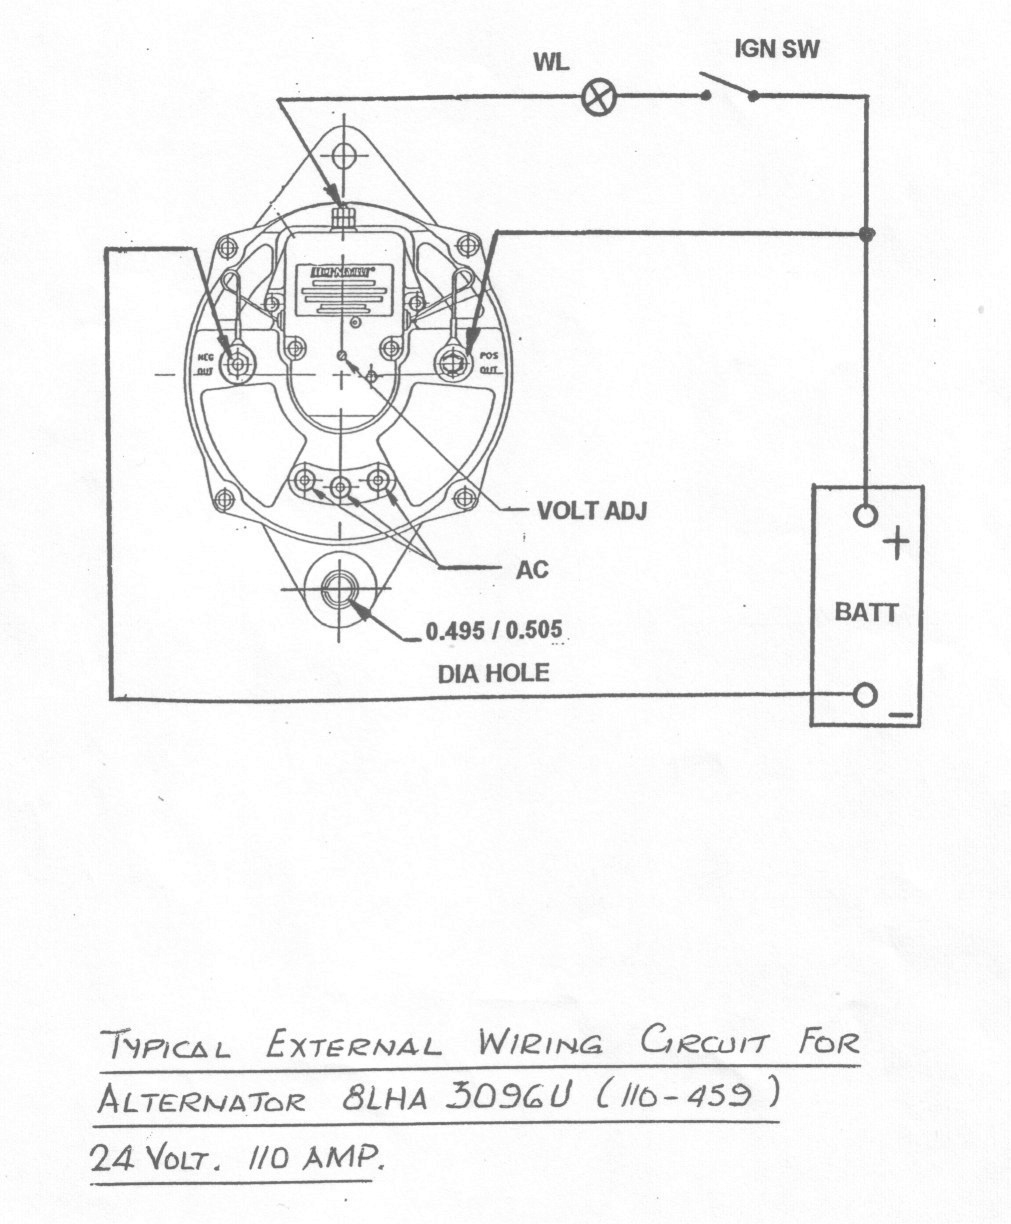 Leece Neville Alternator Wiring Diagram Free Download | Manual E-Books - Leece Neville Alternator Wiring Diagram